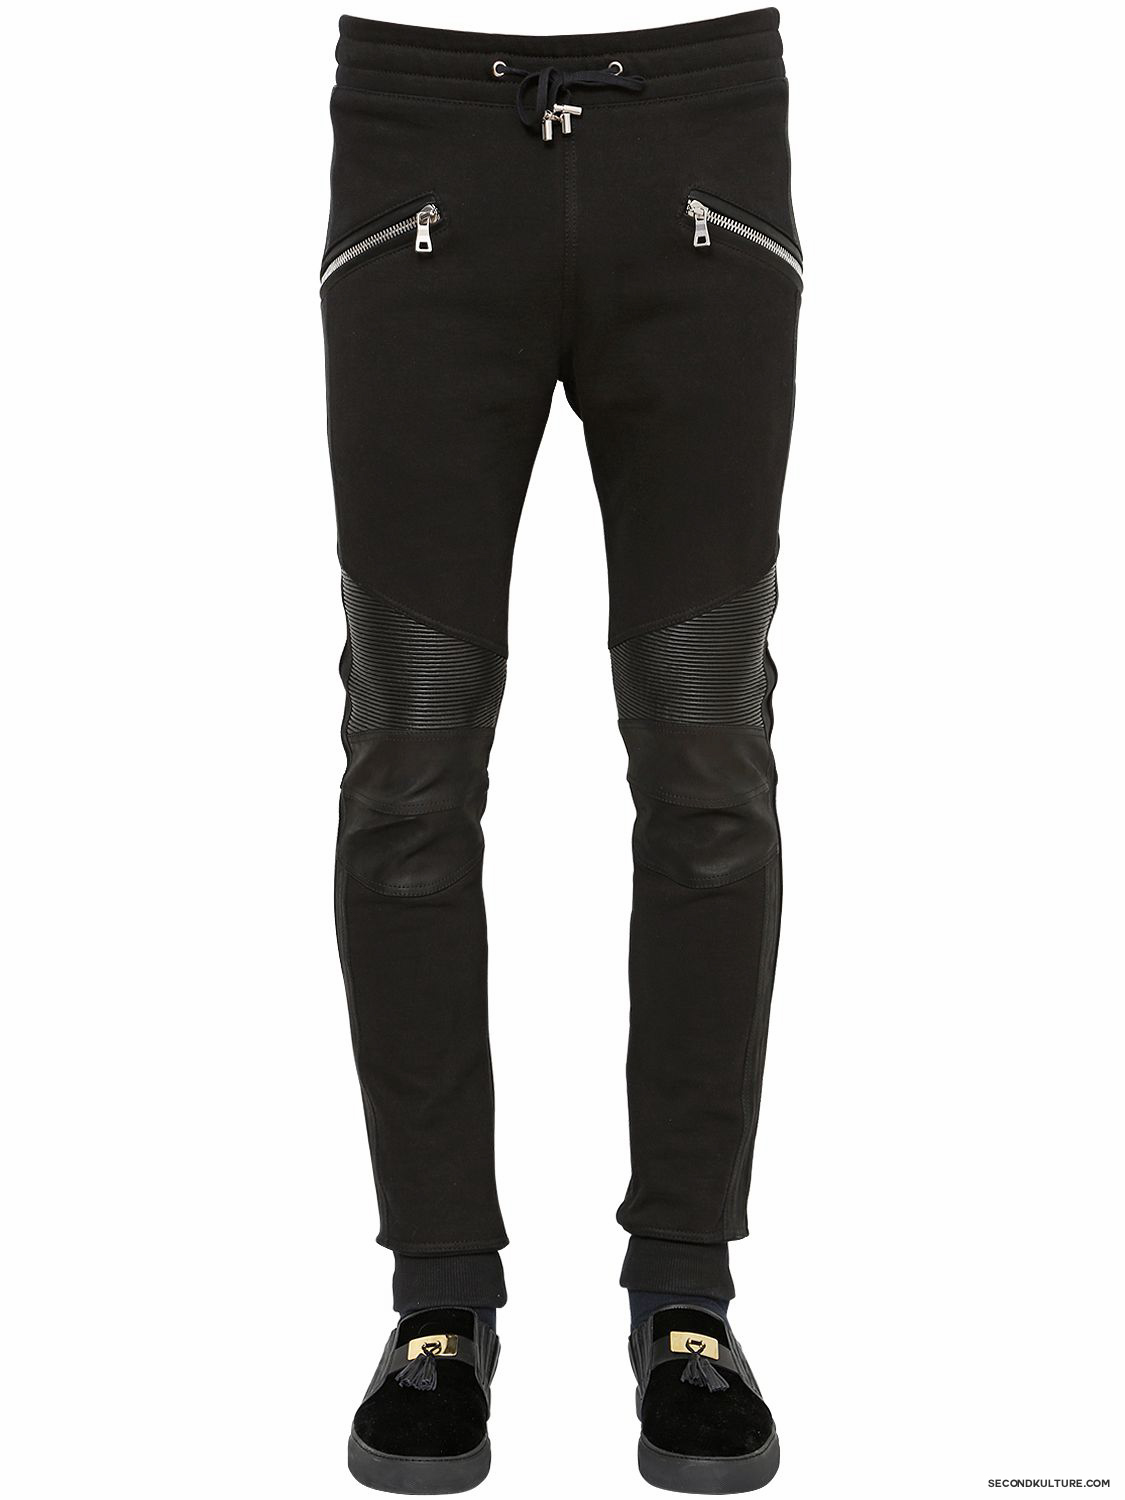 Balmain-Black-Leather-Insert-Biker-Sweatpants-Fall-Winter-2015-1